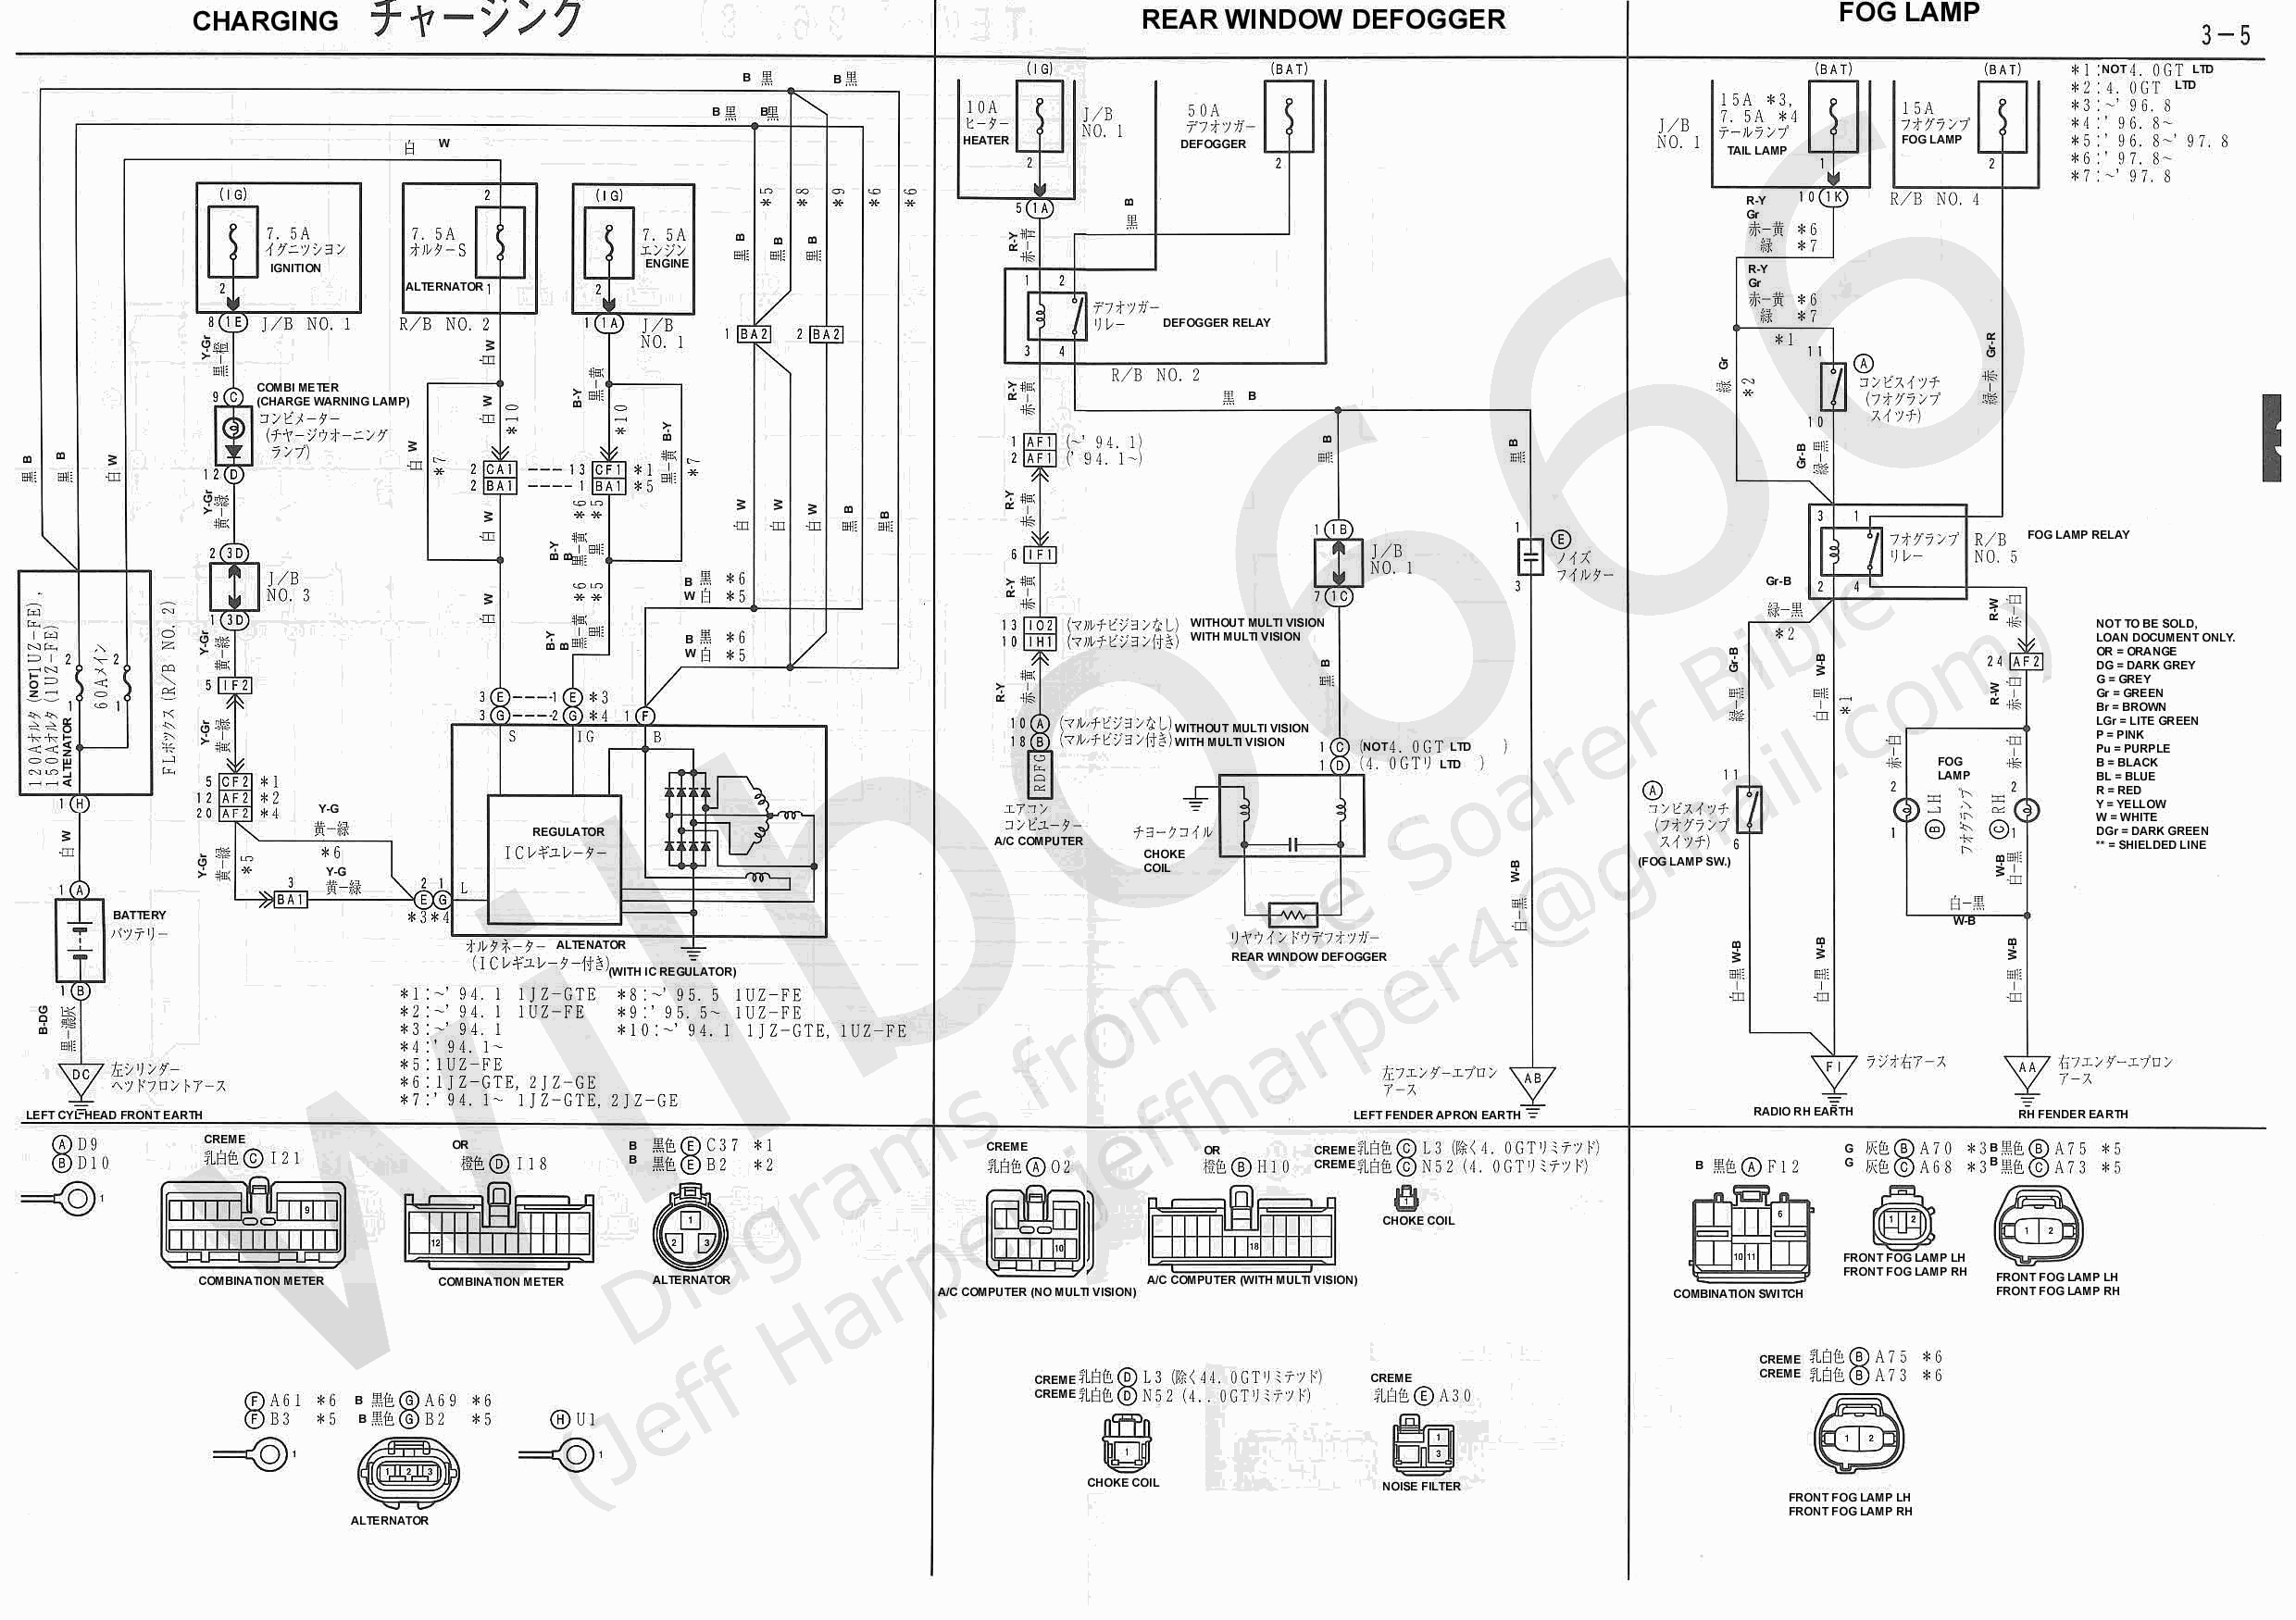 xZZ3x Electrical Wiring Diagram 6737105 3 5?resize\\\\\\\\\\\\\\\=665%2C469 mack rd688s wiring diagram wiring diagram shrutiradio mack rd688s wiring diagram at reclaimingppi.co